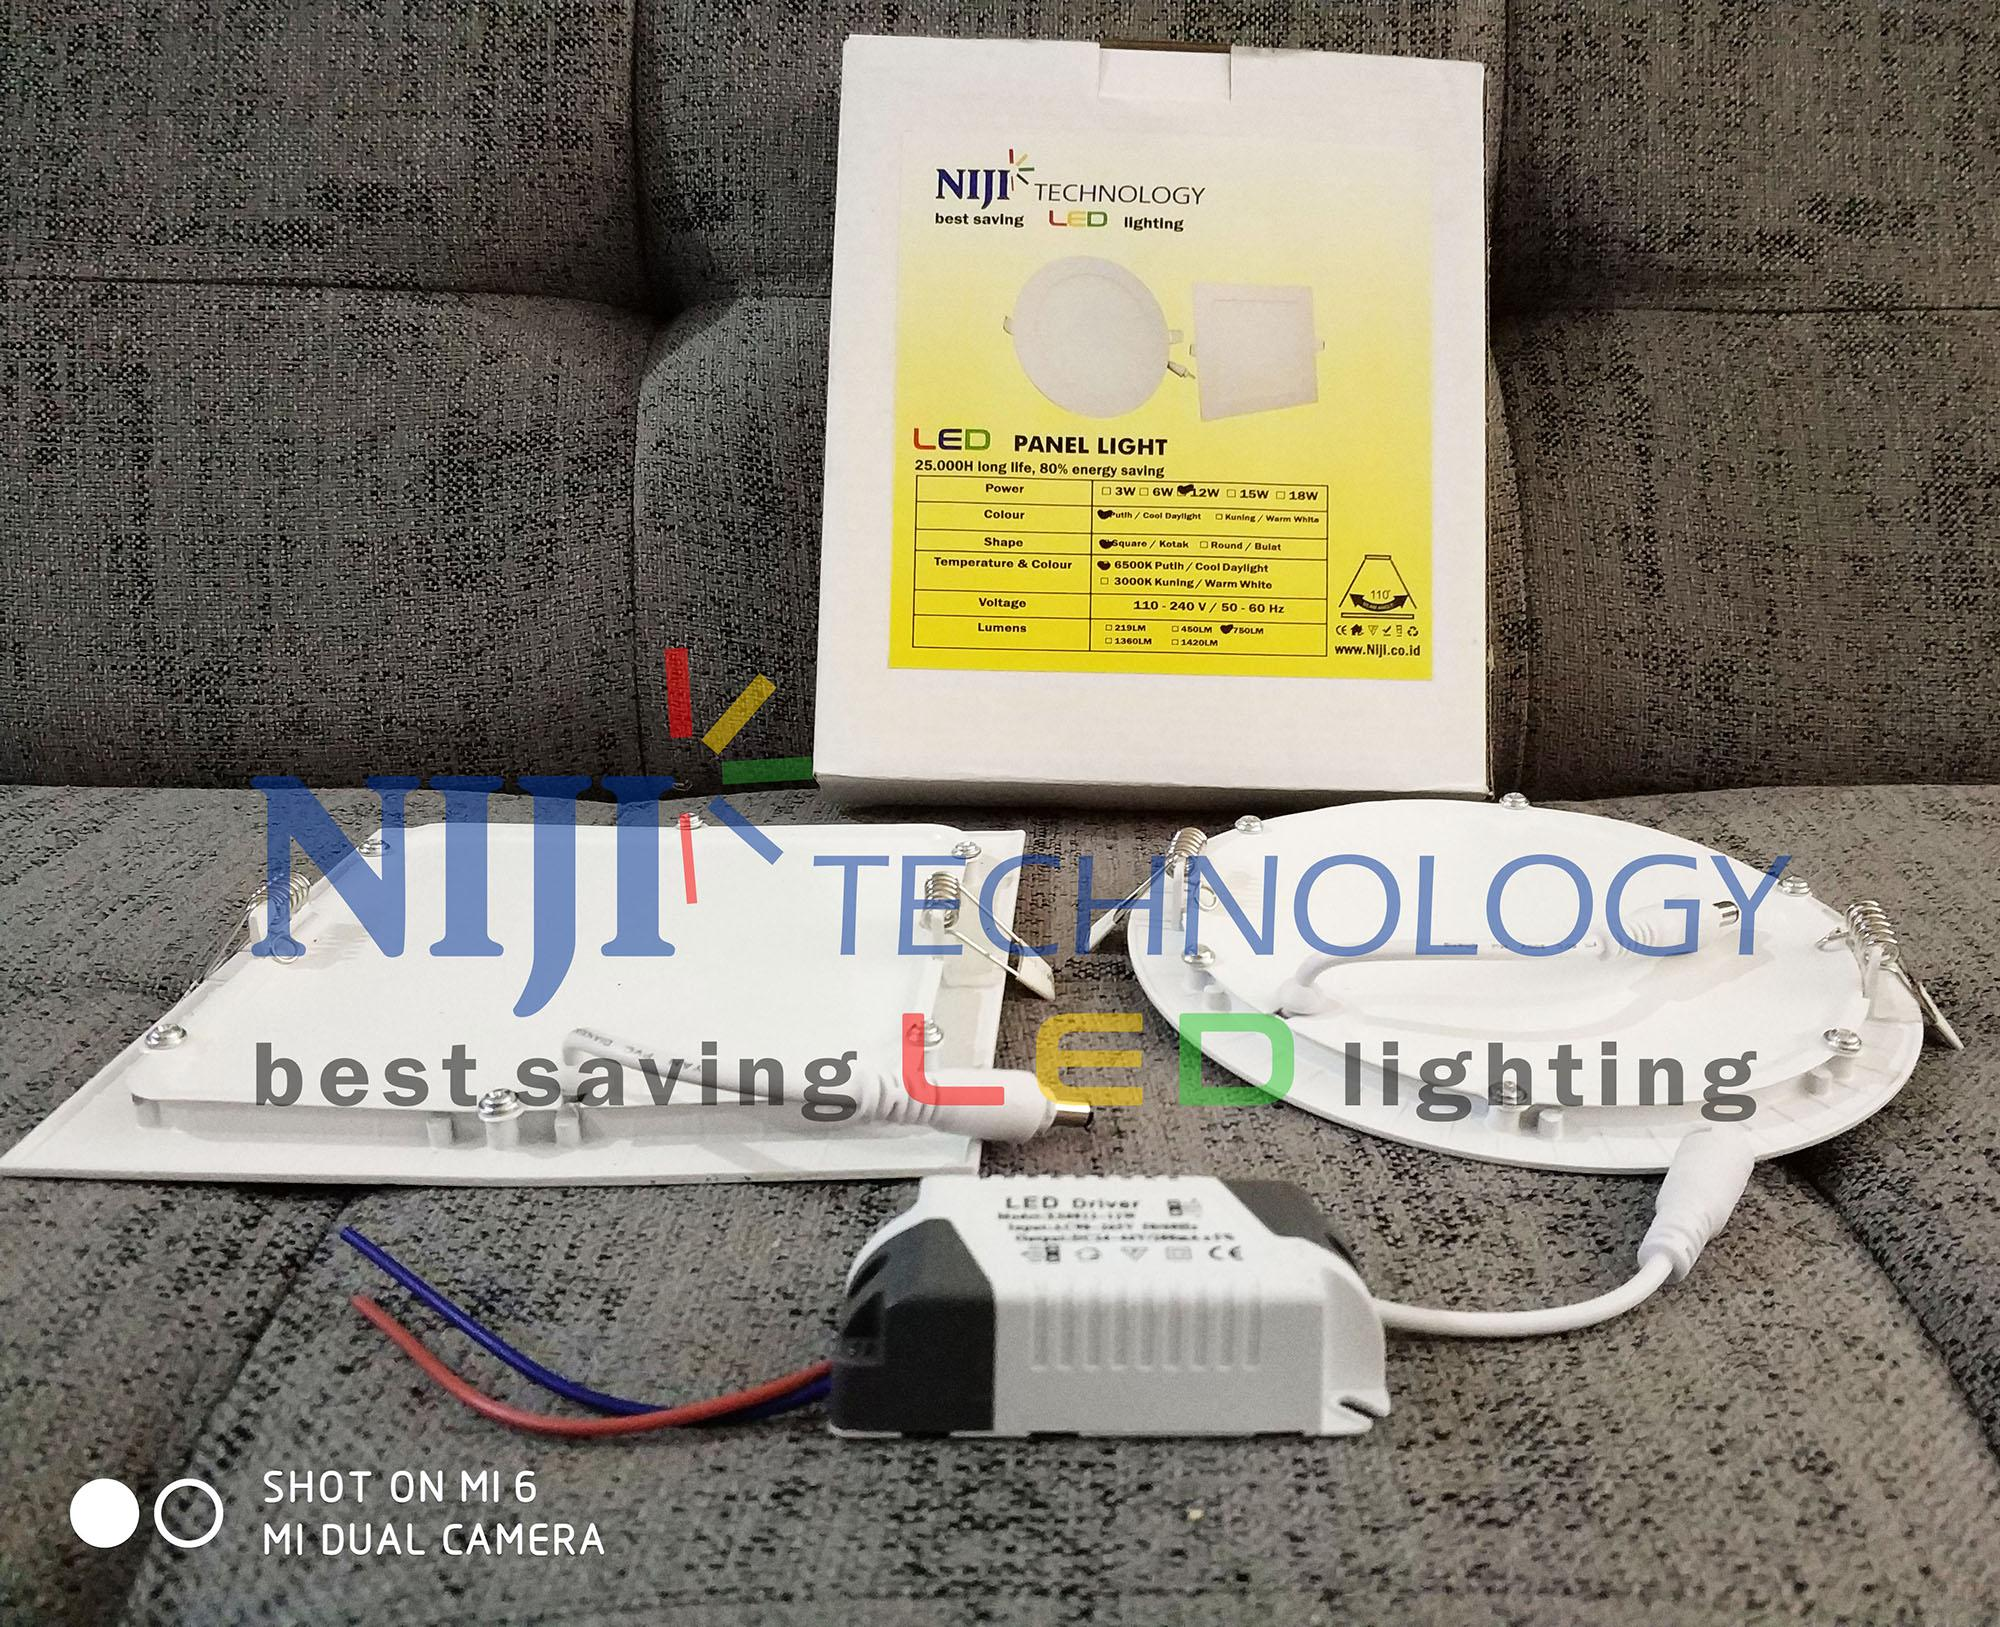 Lampu NIJI downlight LED panel bulat dan kotak warna putih 12W